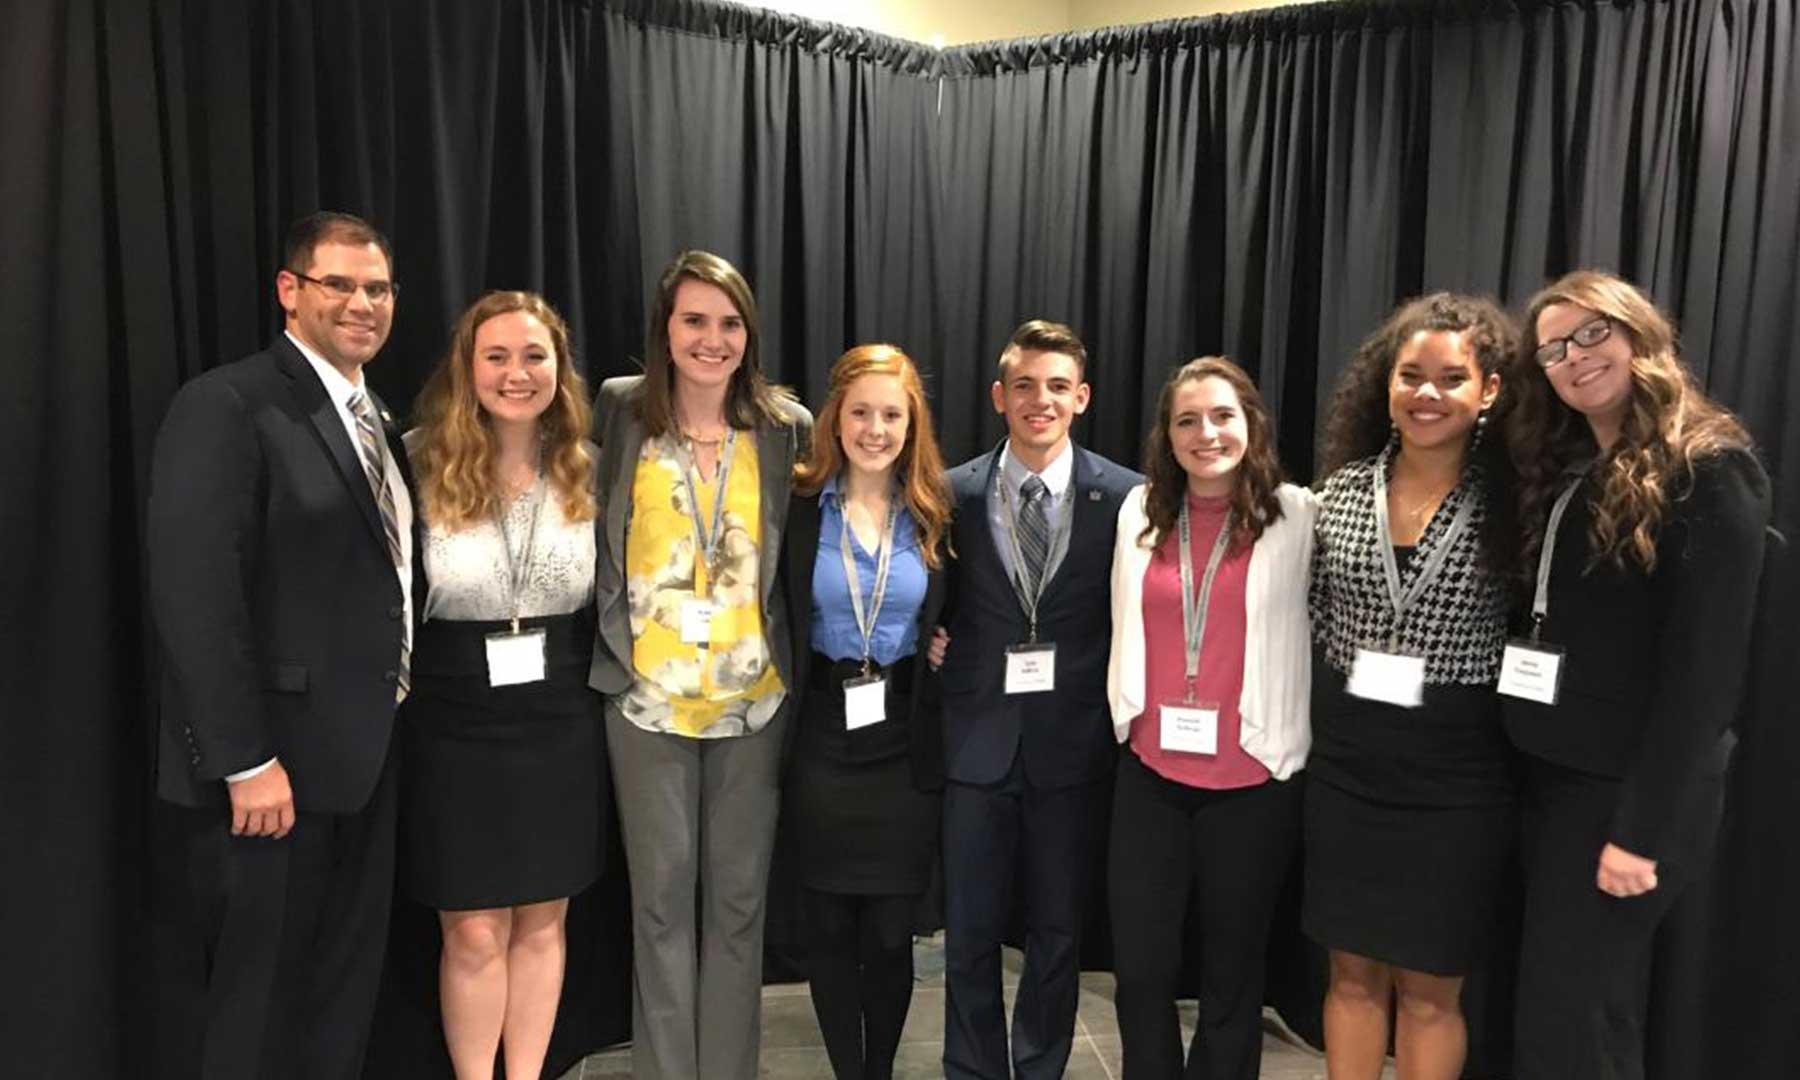 Sport and event management students network at a national conference.